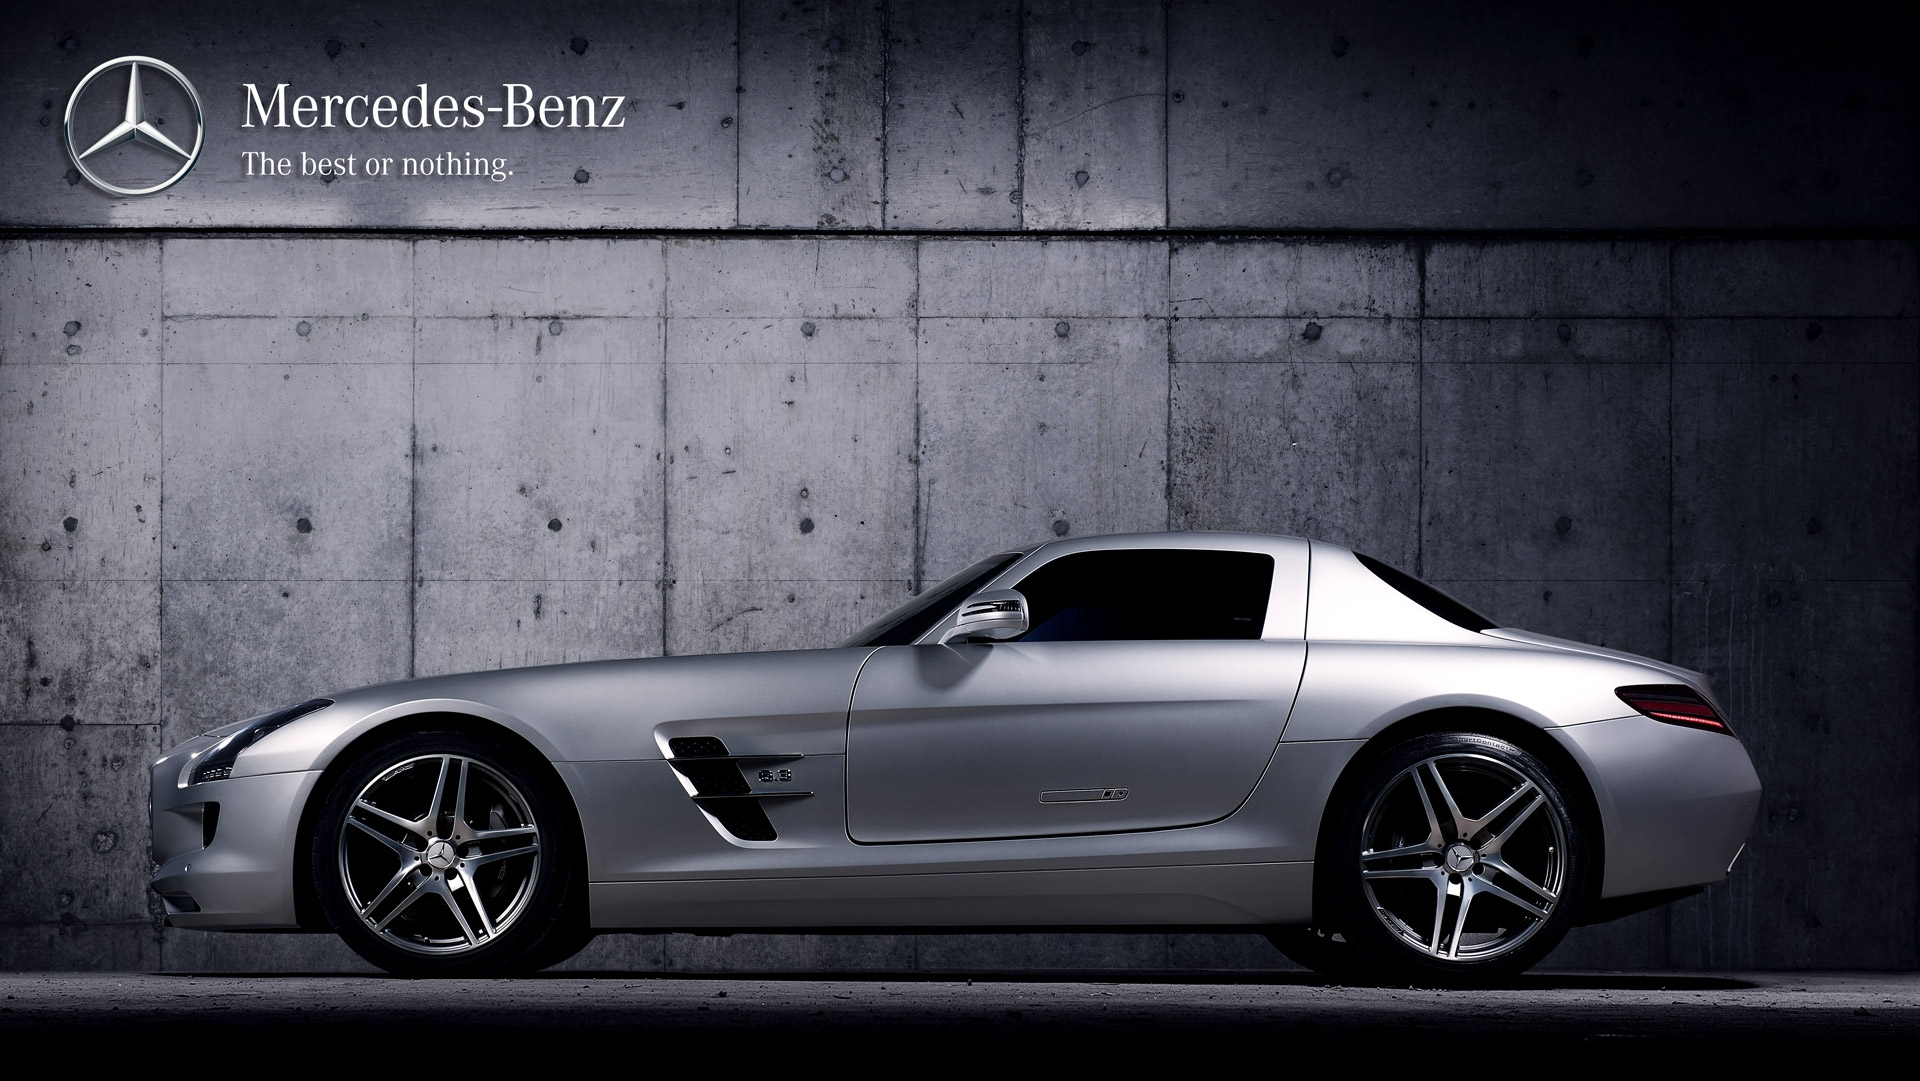 frederic mercier fashion photographer one color publicite packshot automobile voiture supercar mercedes sls amg